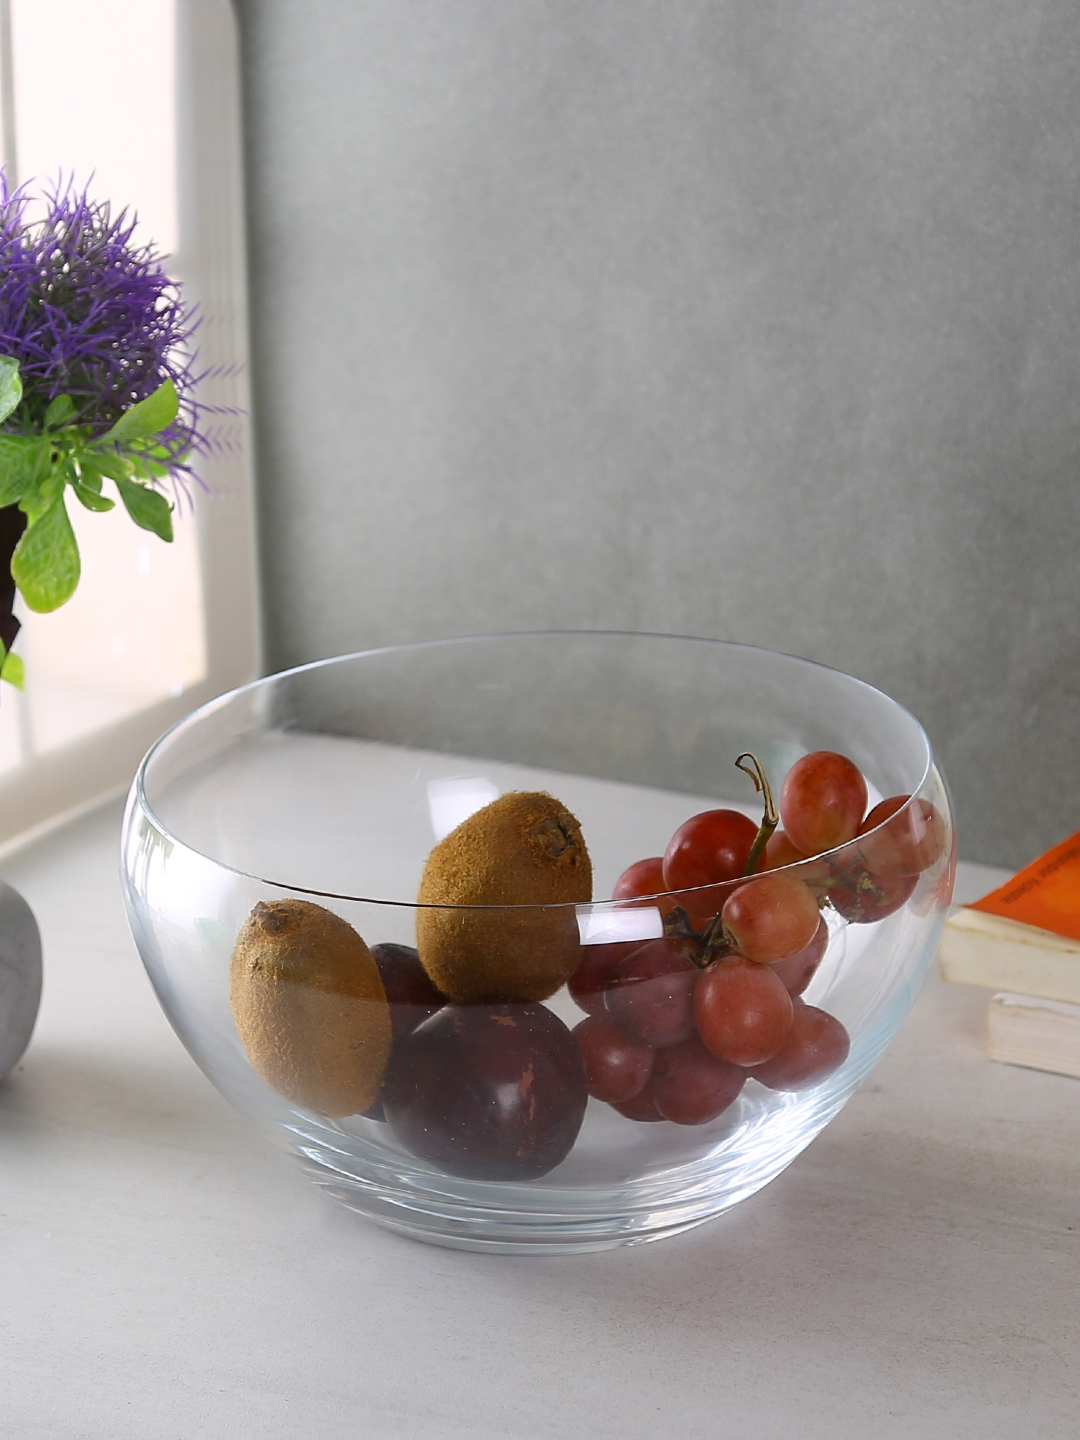 Bohemia Crystal Transparent Solid Glass Bowl 235 mm